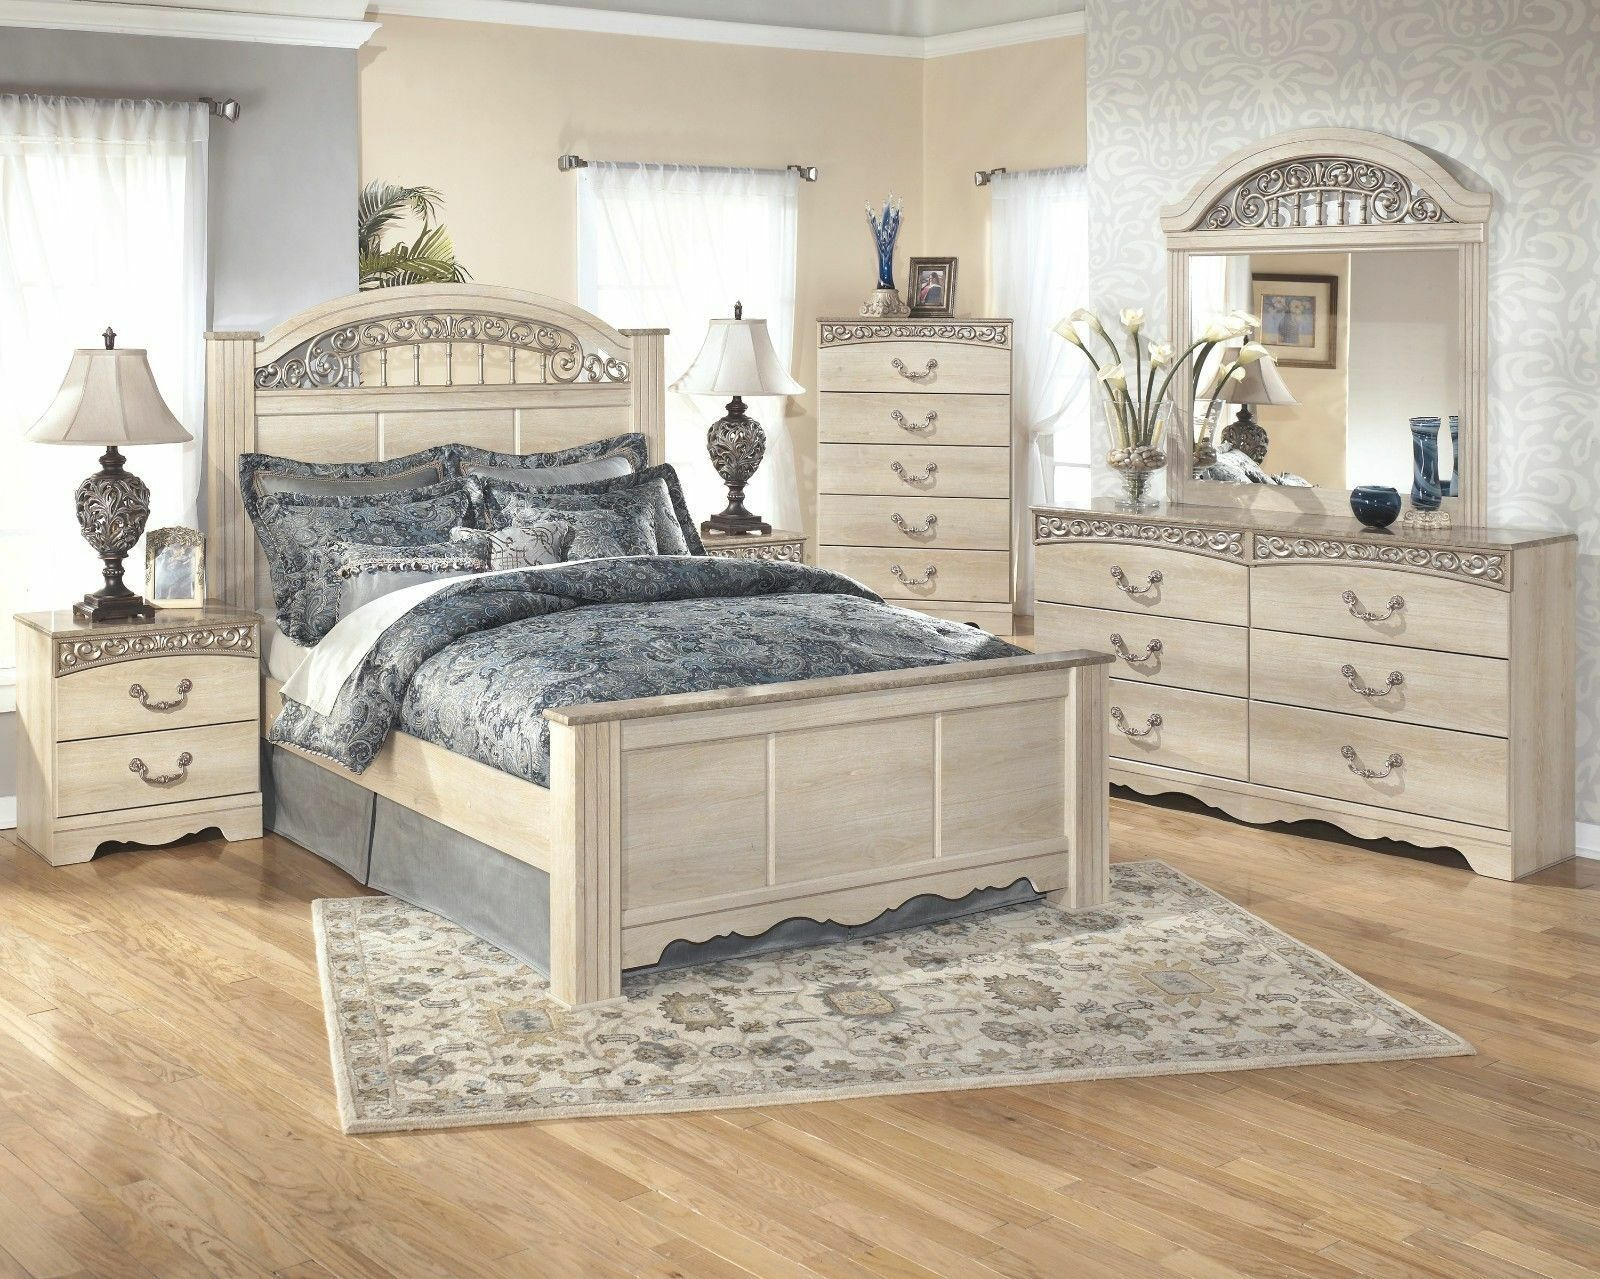 Ashley Furniture B196 Catalina 4 Piece Queen Or King Bed Frame